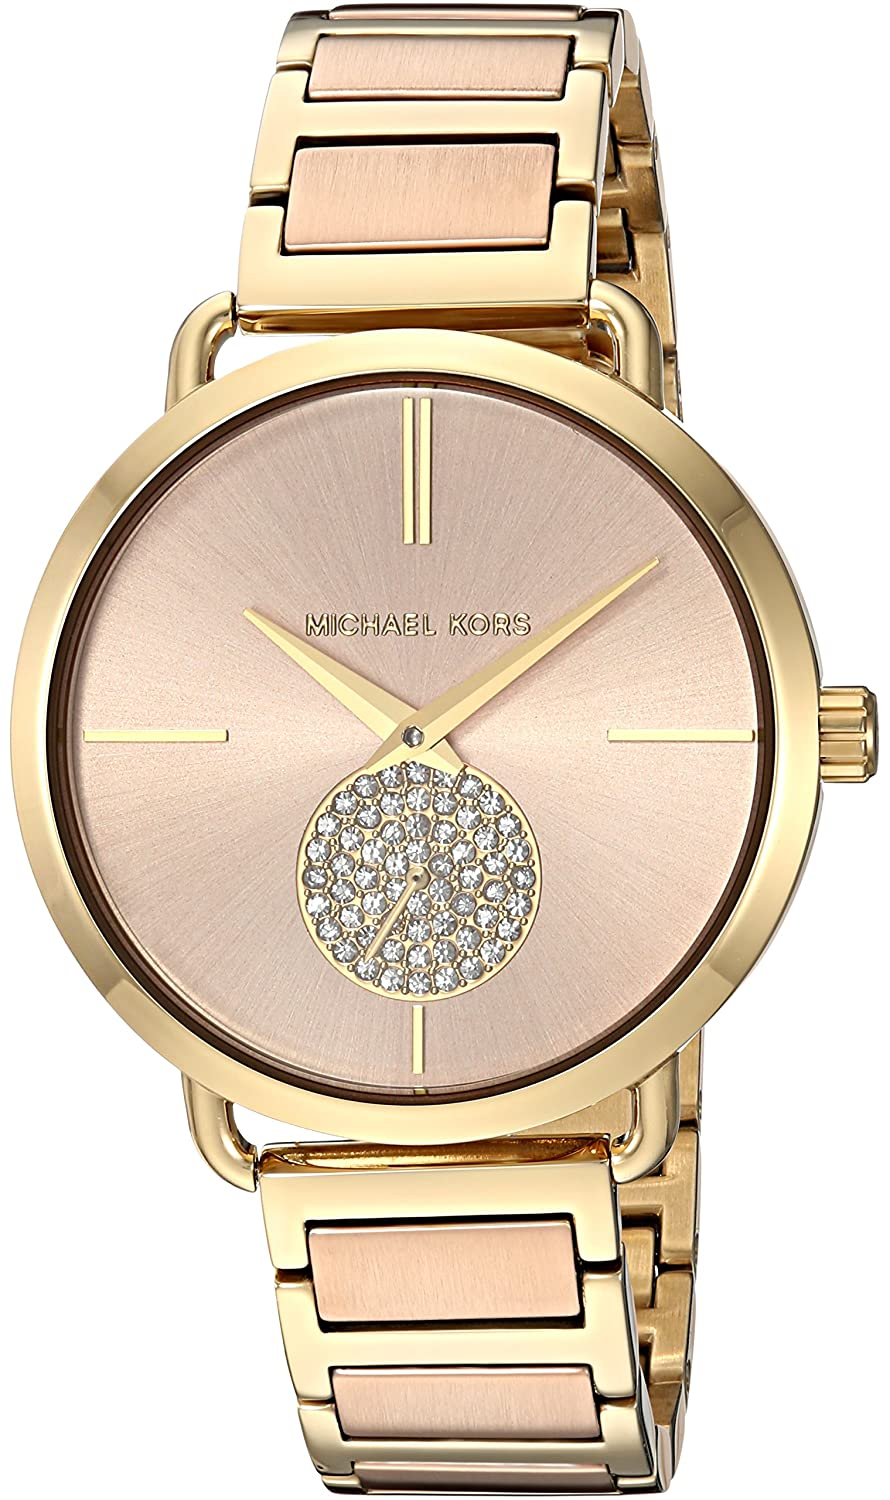 19b3e4658b21 Michael Kors Women s Analogue Quartz Watch with Stainless Steel Strap MK3706   Michael Kors  Amazon.co.uk  Watches